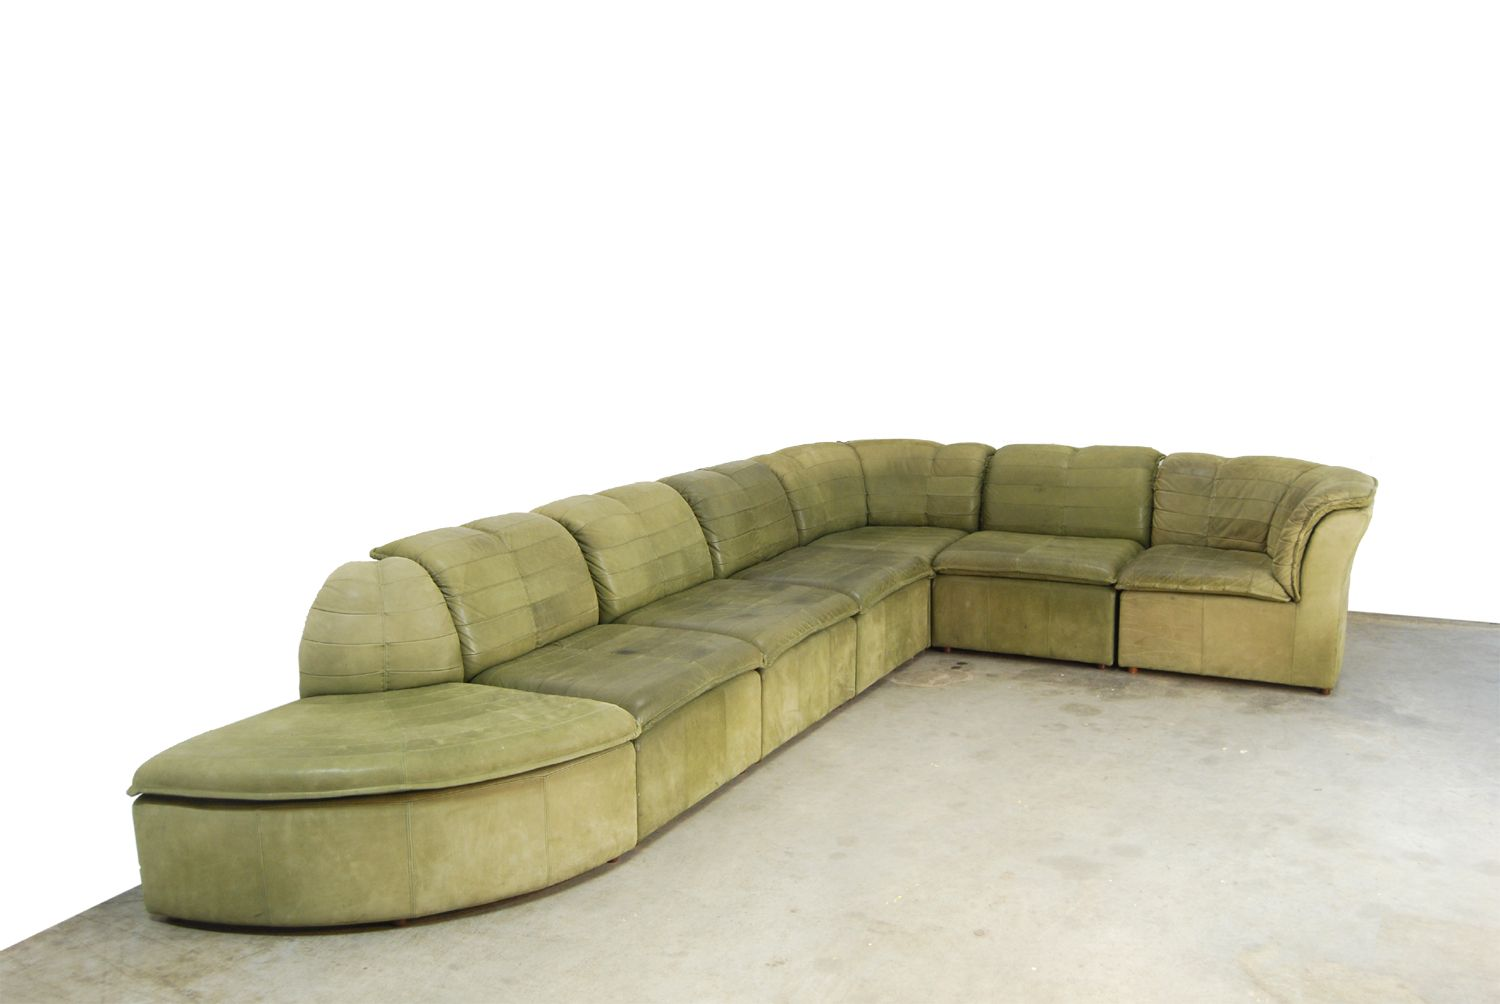 nubuck leather sofa teal chenille bed modular from laauser 1970s for sale